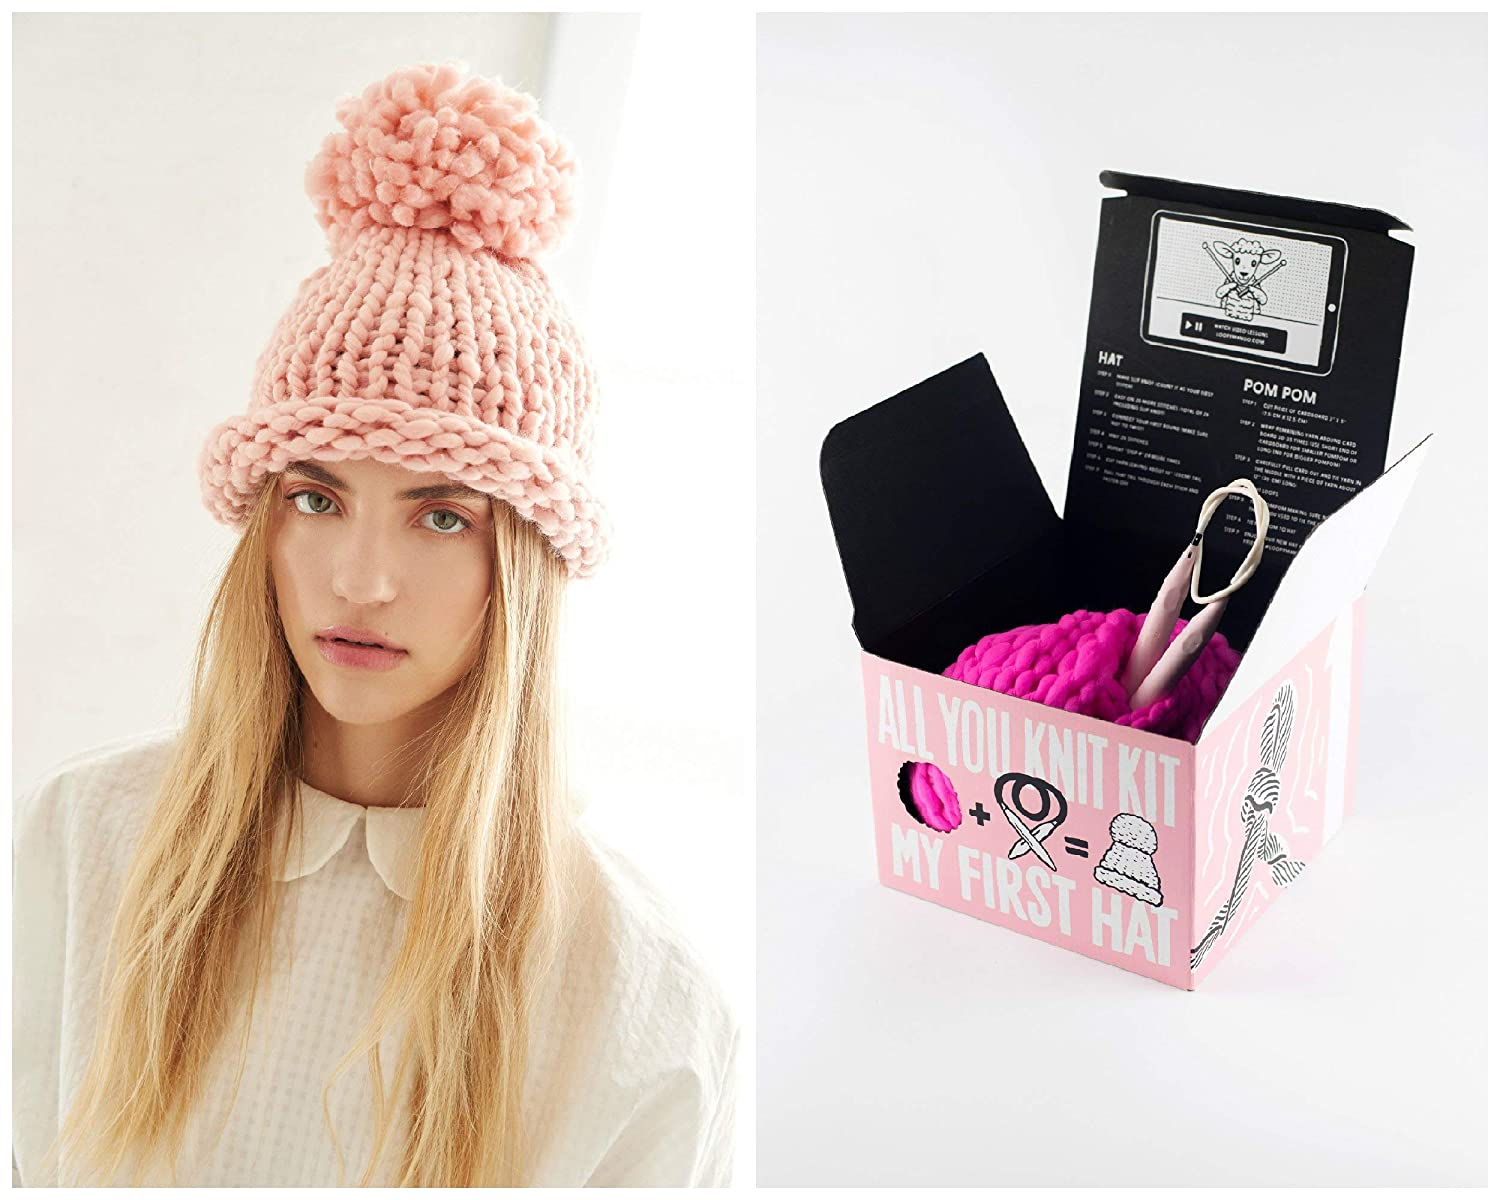 51ba7a2c503 Amazon.com  Loopy Mango DIY All You Knit Kit - My First Hat (Black)